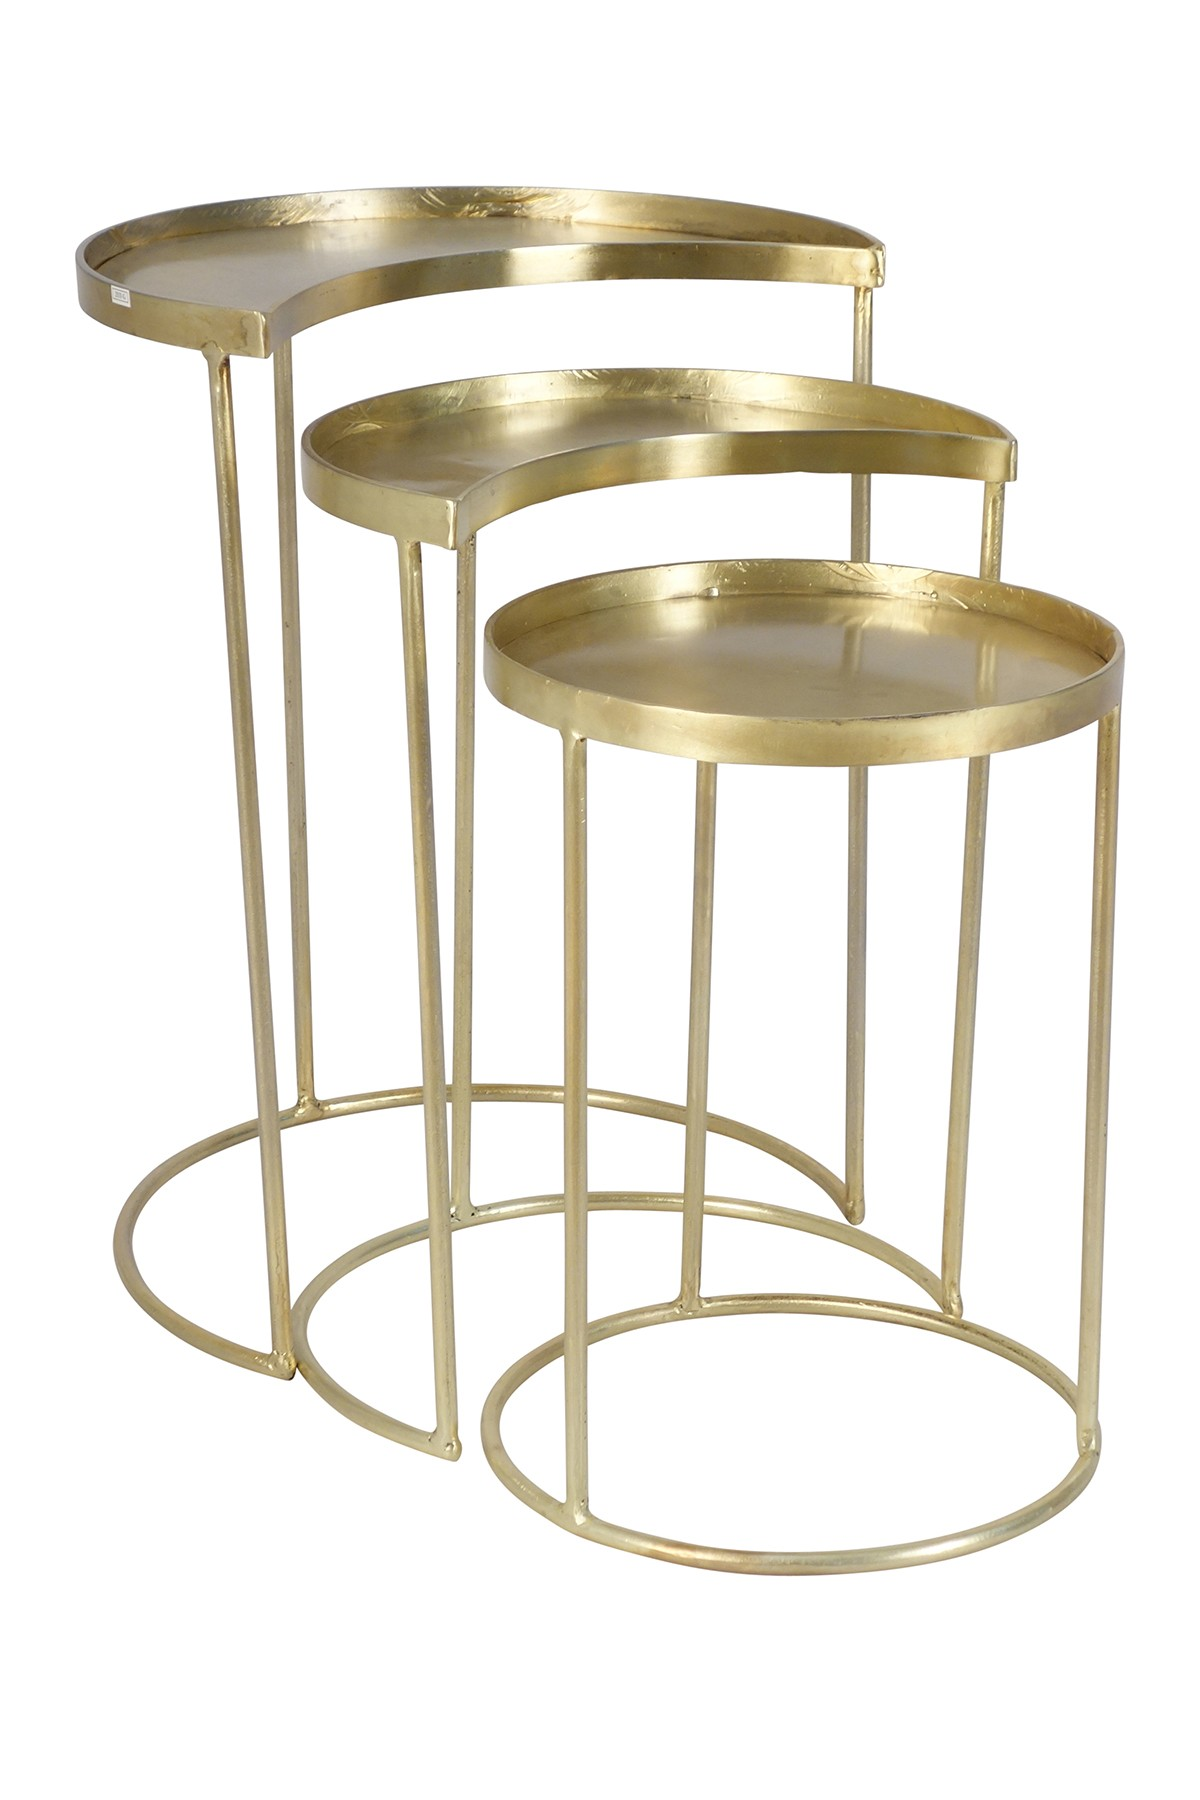 amazing metal accent table outdoor white target threshold top base drum side glass tables corranade bronze wrought round iron patio marble full size bookshelf couch and chair set